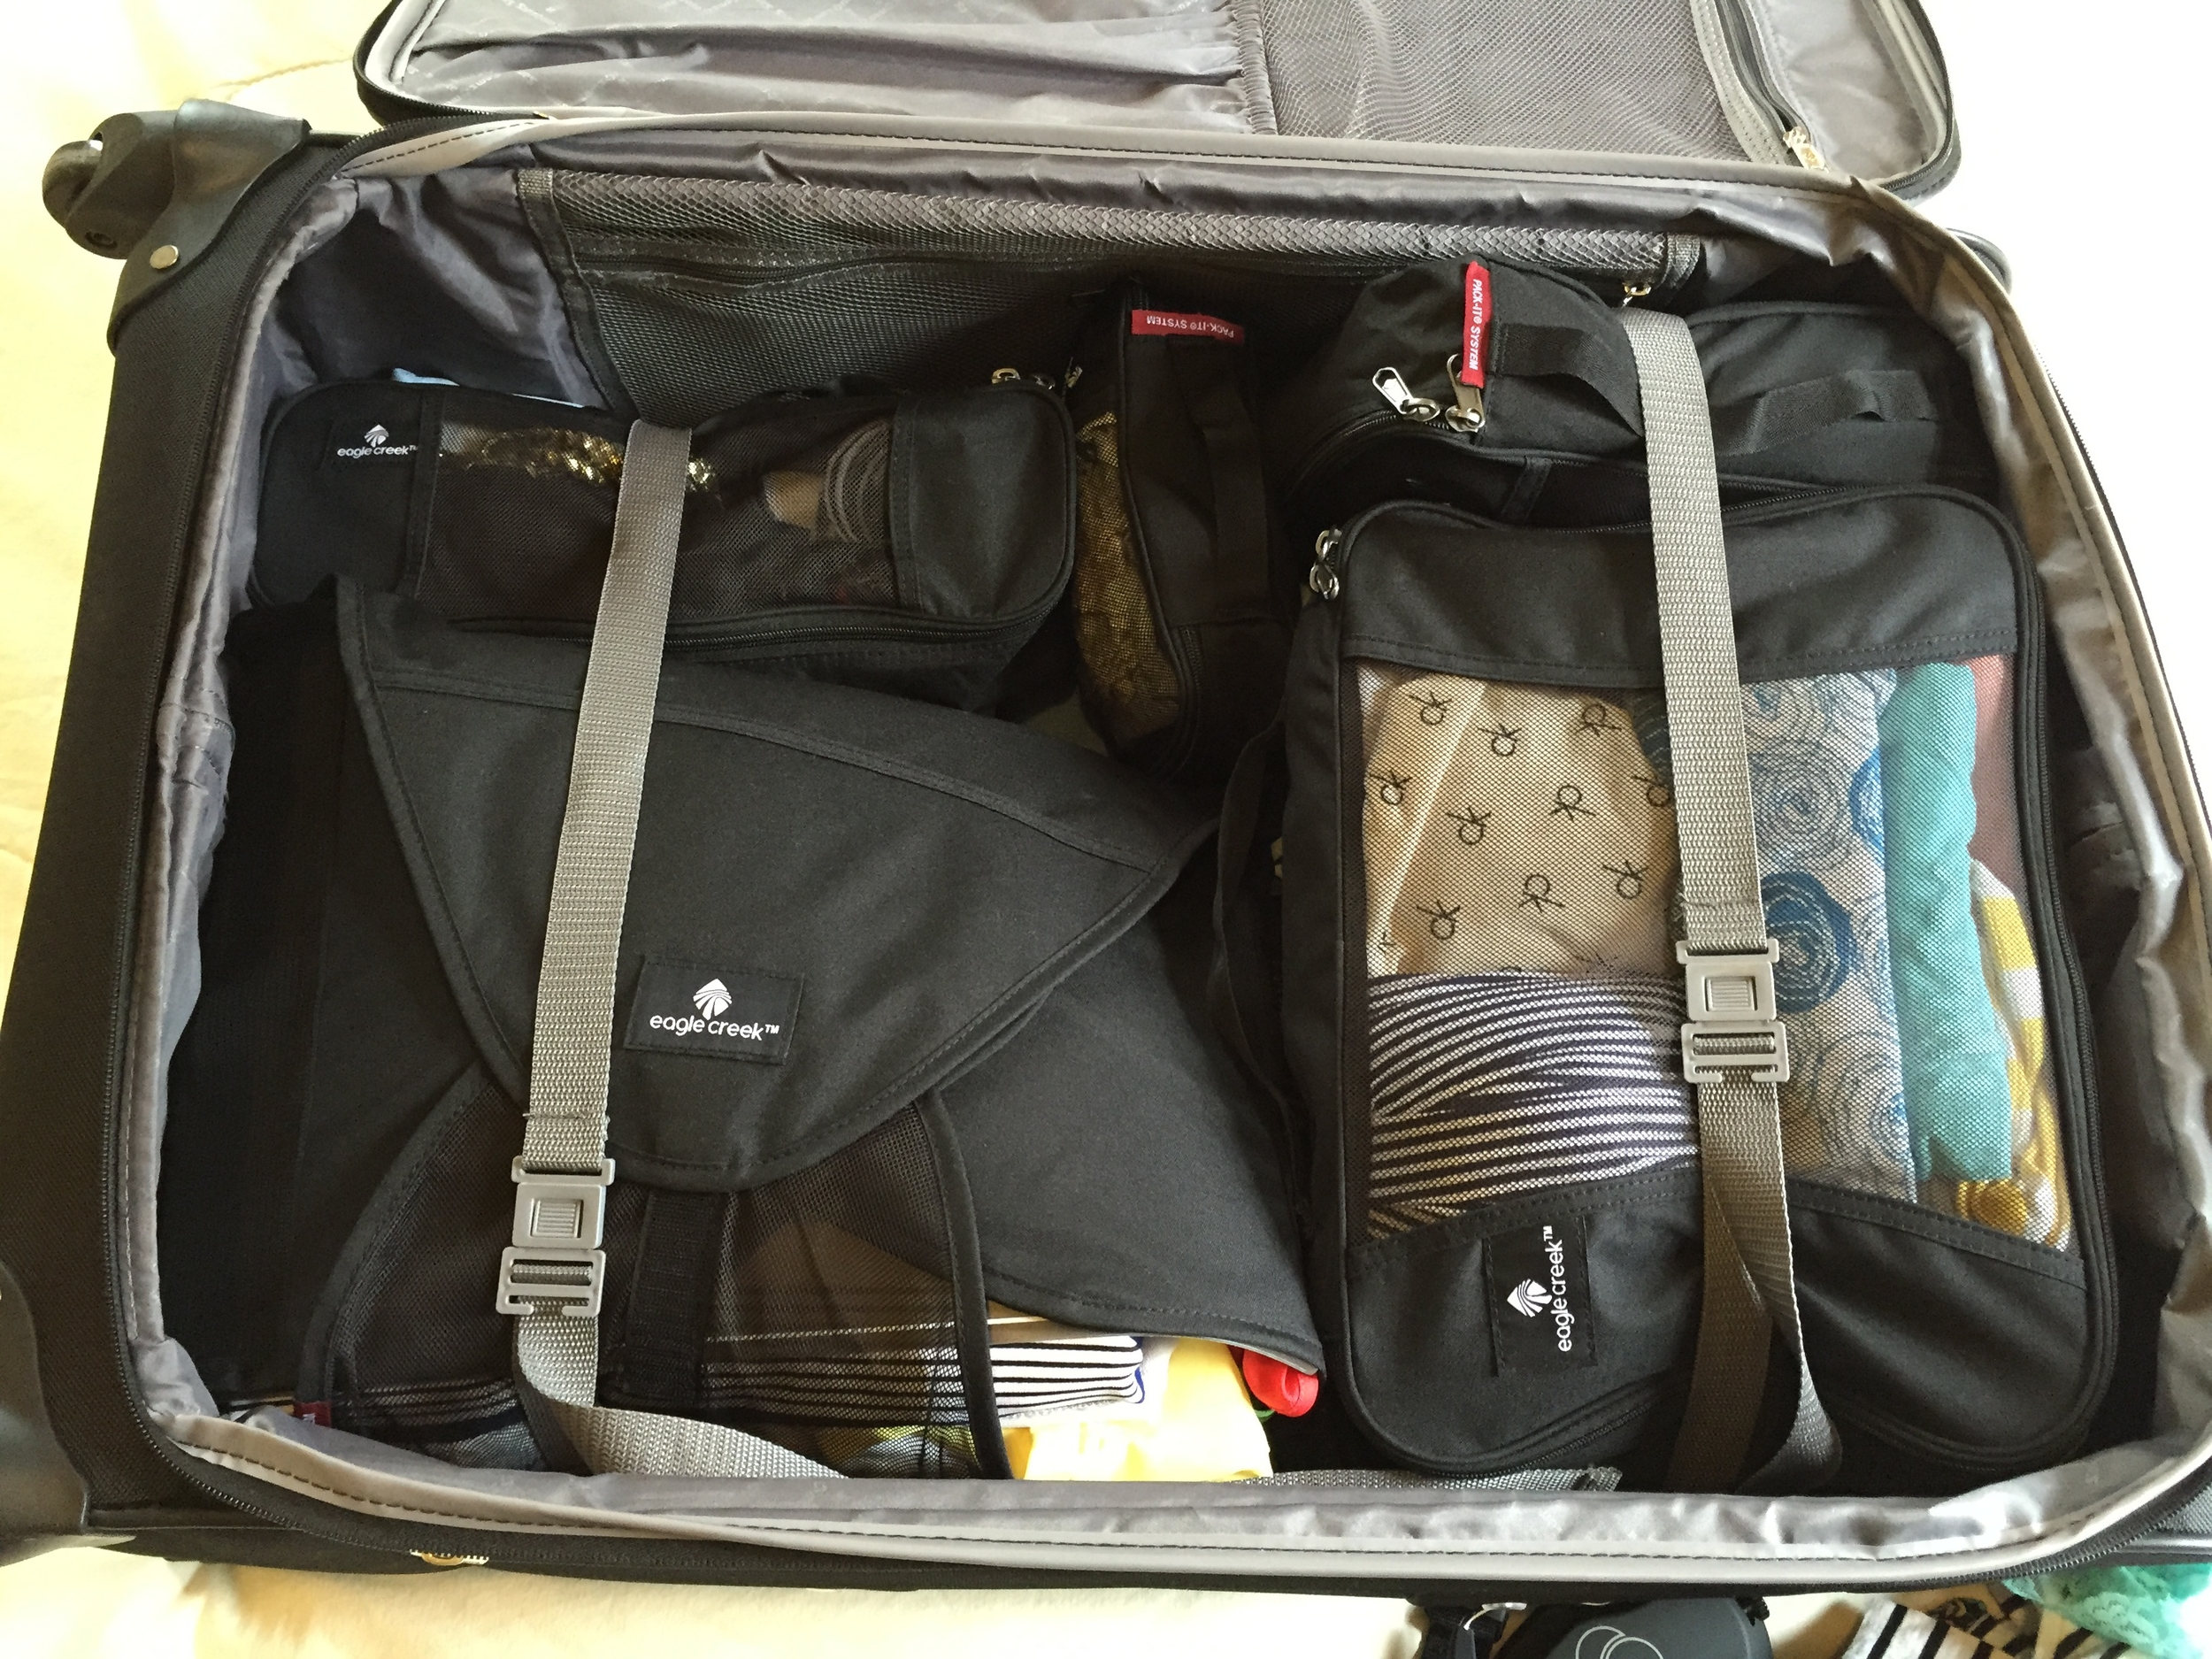 Packing cubes make extra room in your suitcase